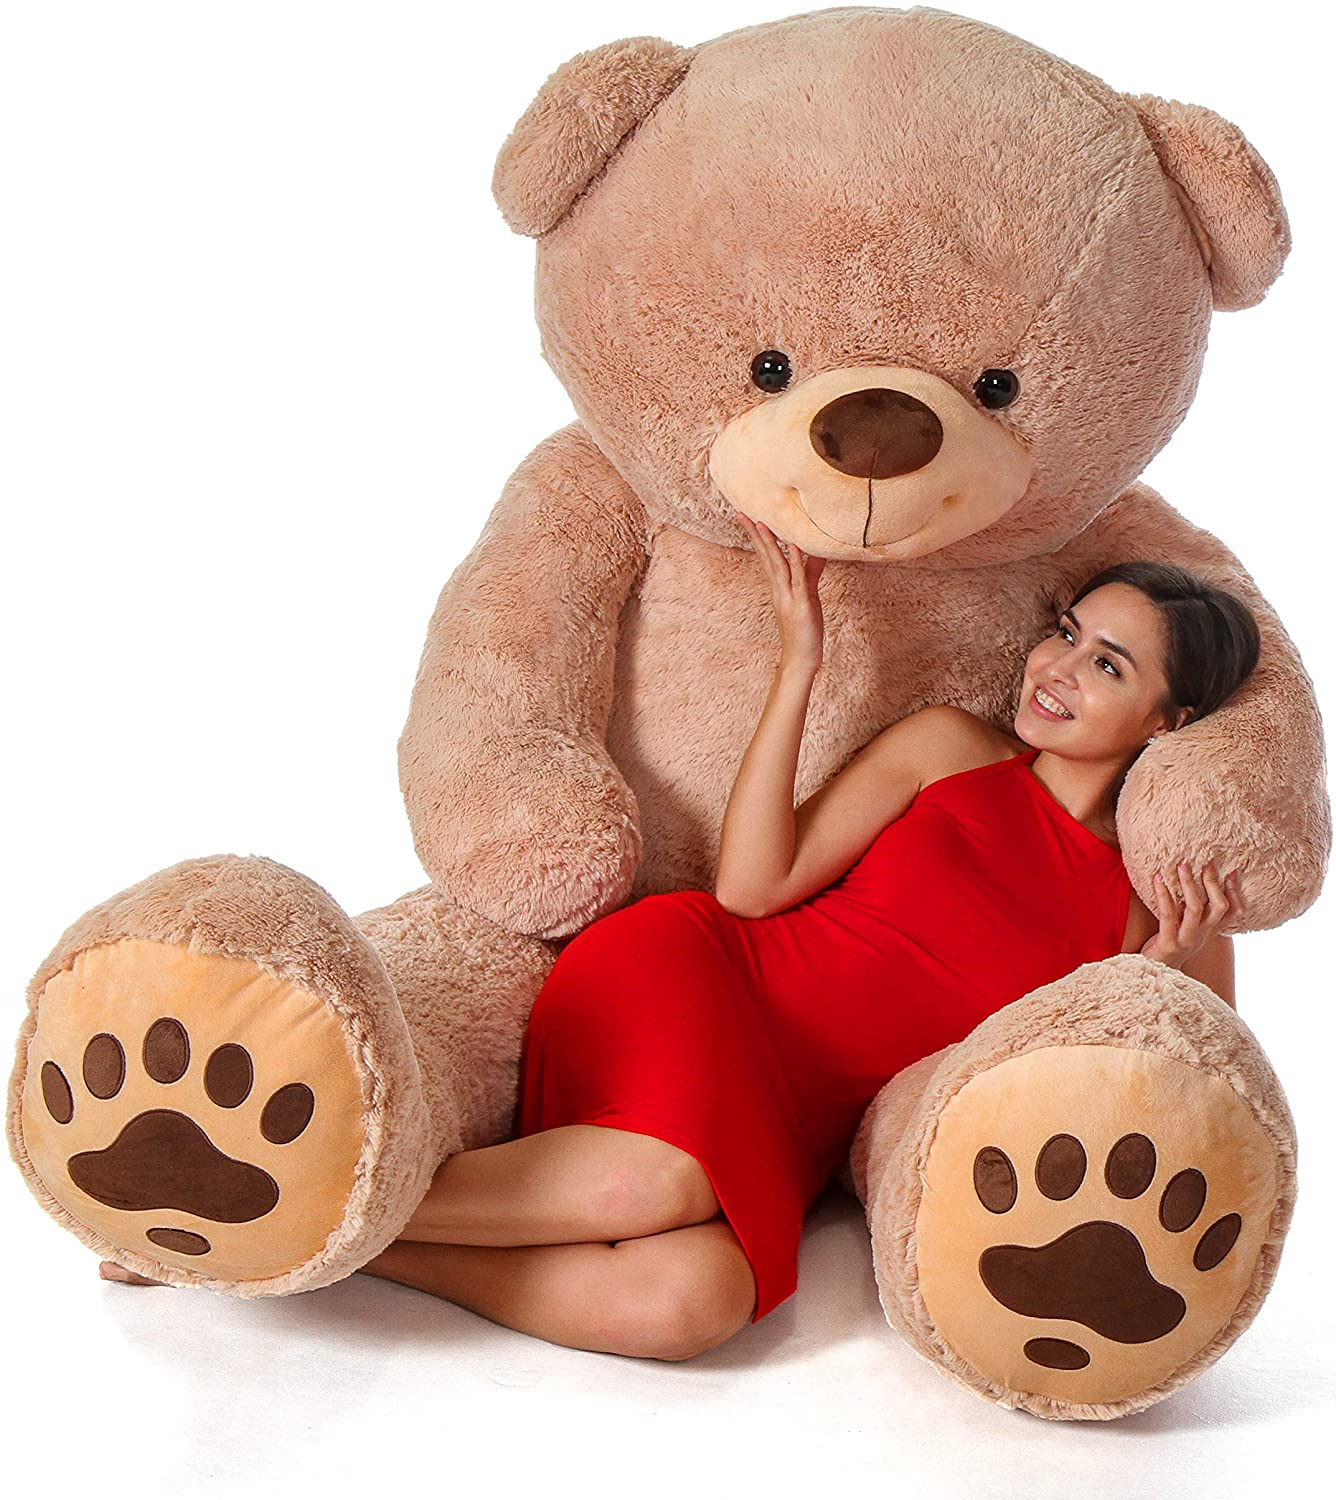 Amazon Com Giant Teddy Brand Premium Quality Giant Stuffed Teddy Bear Amber Tan 7 Foot Toys Games Check out our teddy bear clipart selection for the very best in unique or custom, handmade pieces from our craft supplies & tools shops. giant teddy brand premium quality giant stuffed teddy bear amber tan 7 foot